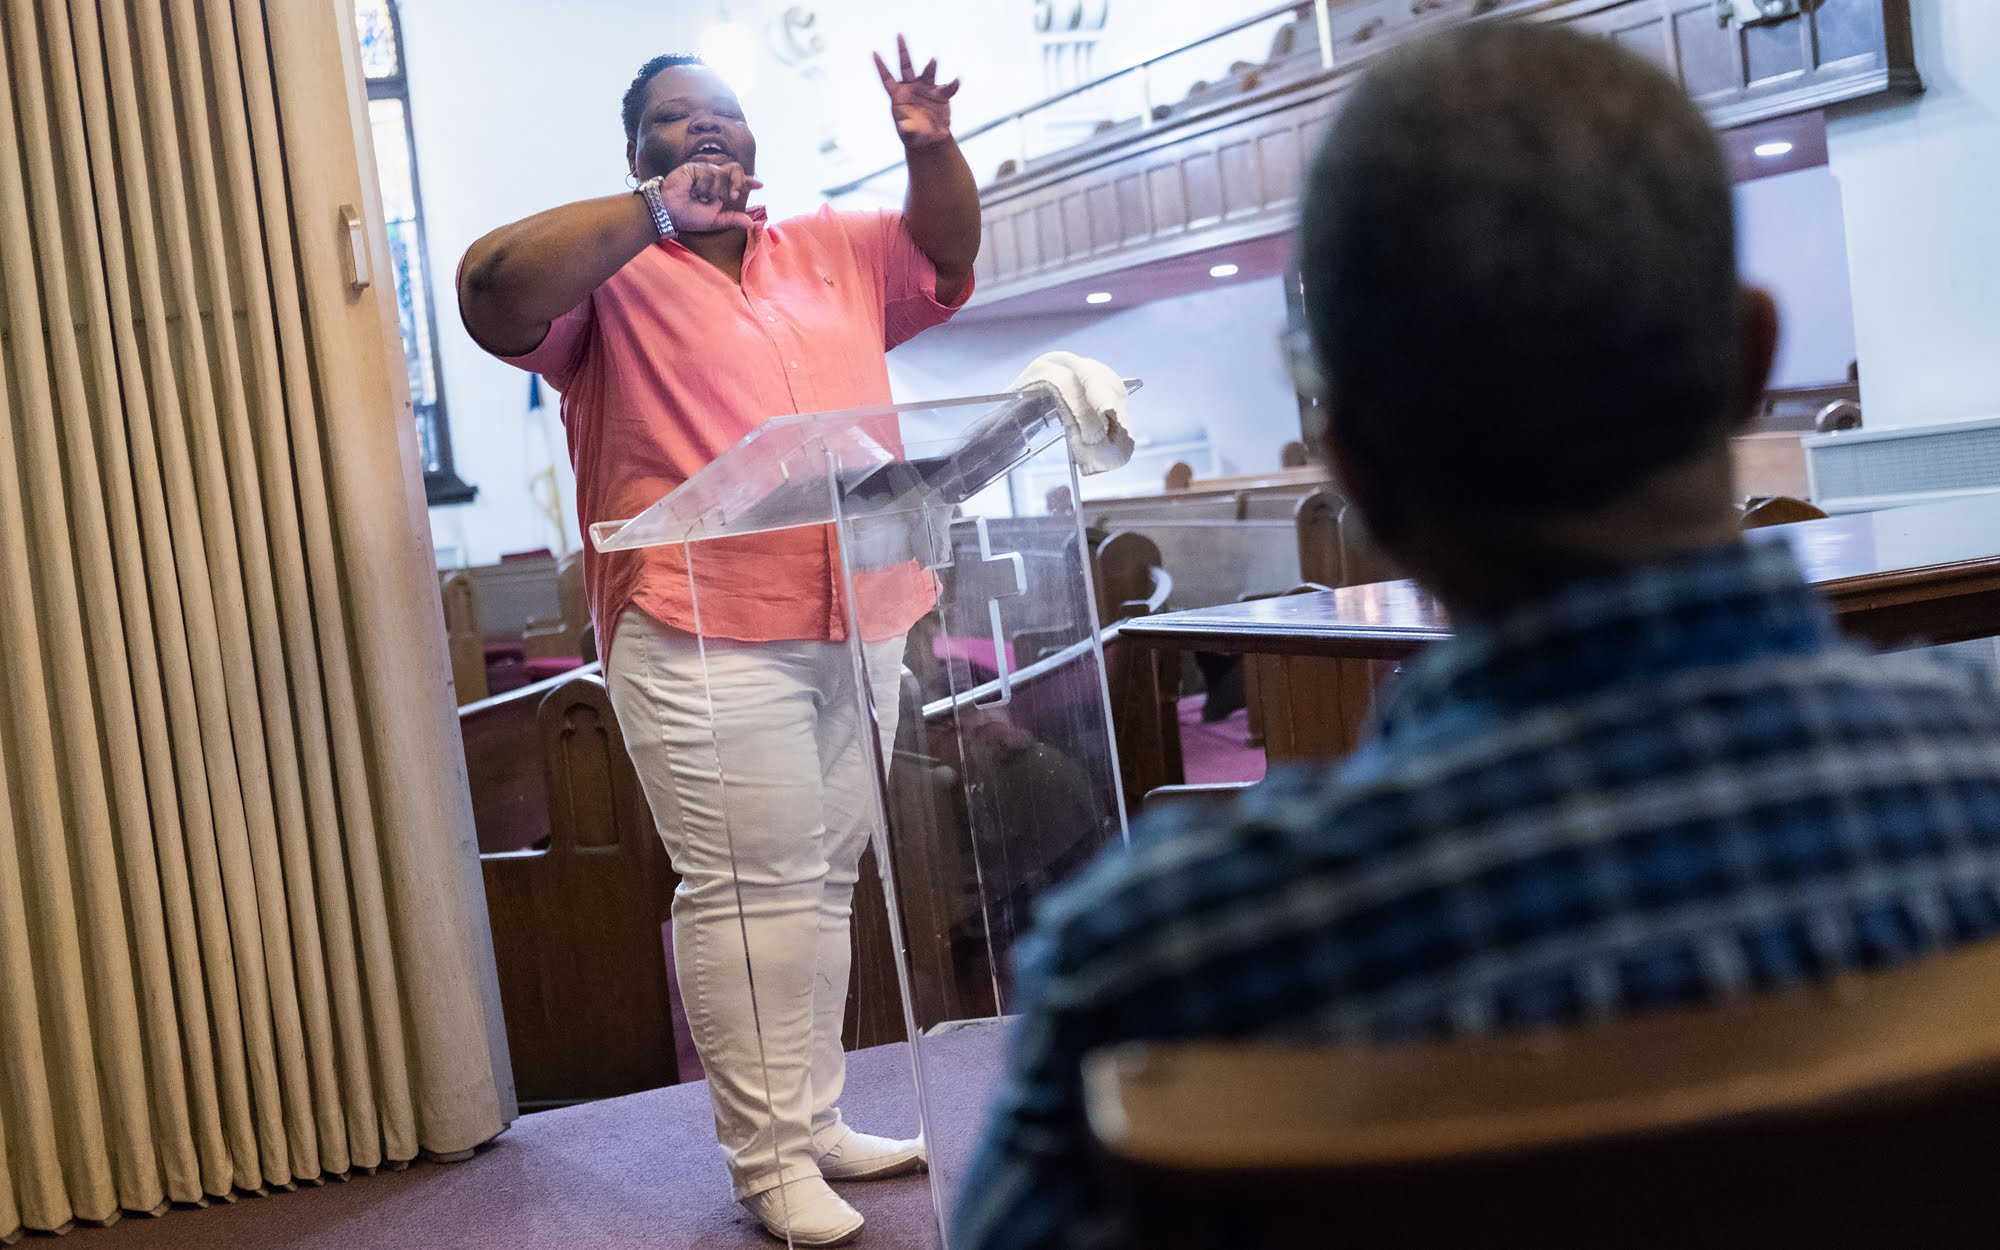 Rev. Shanea Leonard delivers the sermon during worship services. (Photo by Terry Clark/PublicSource)